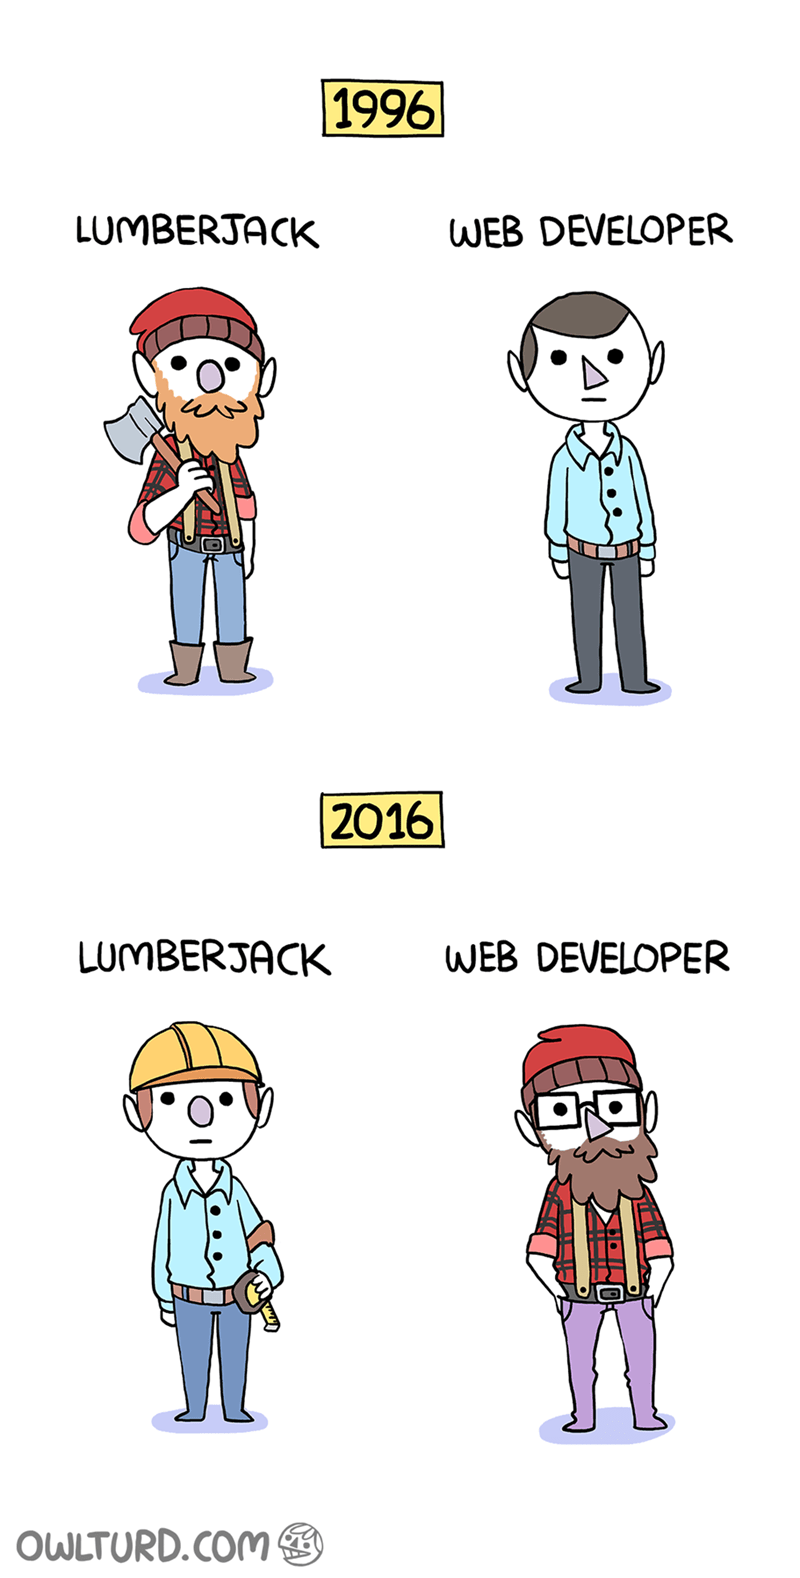 fashion-wardrobe-web-comics-web-developer-lumberjack-swap